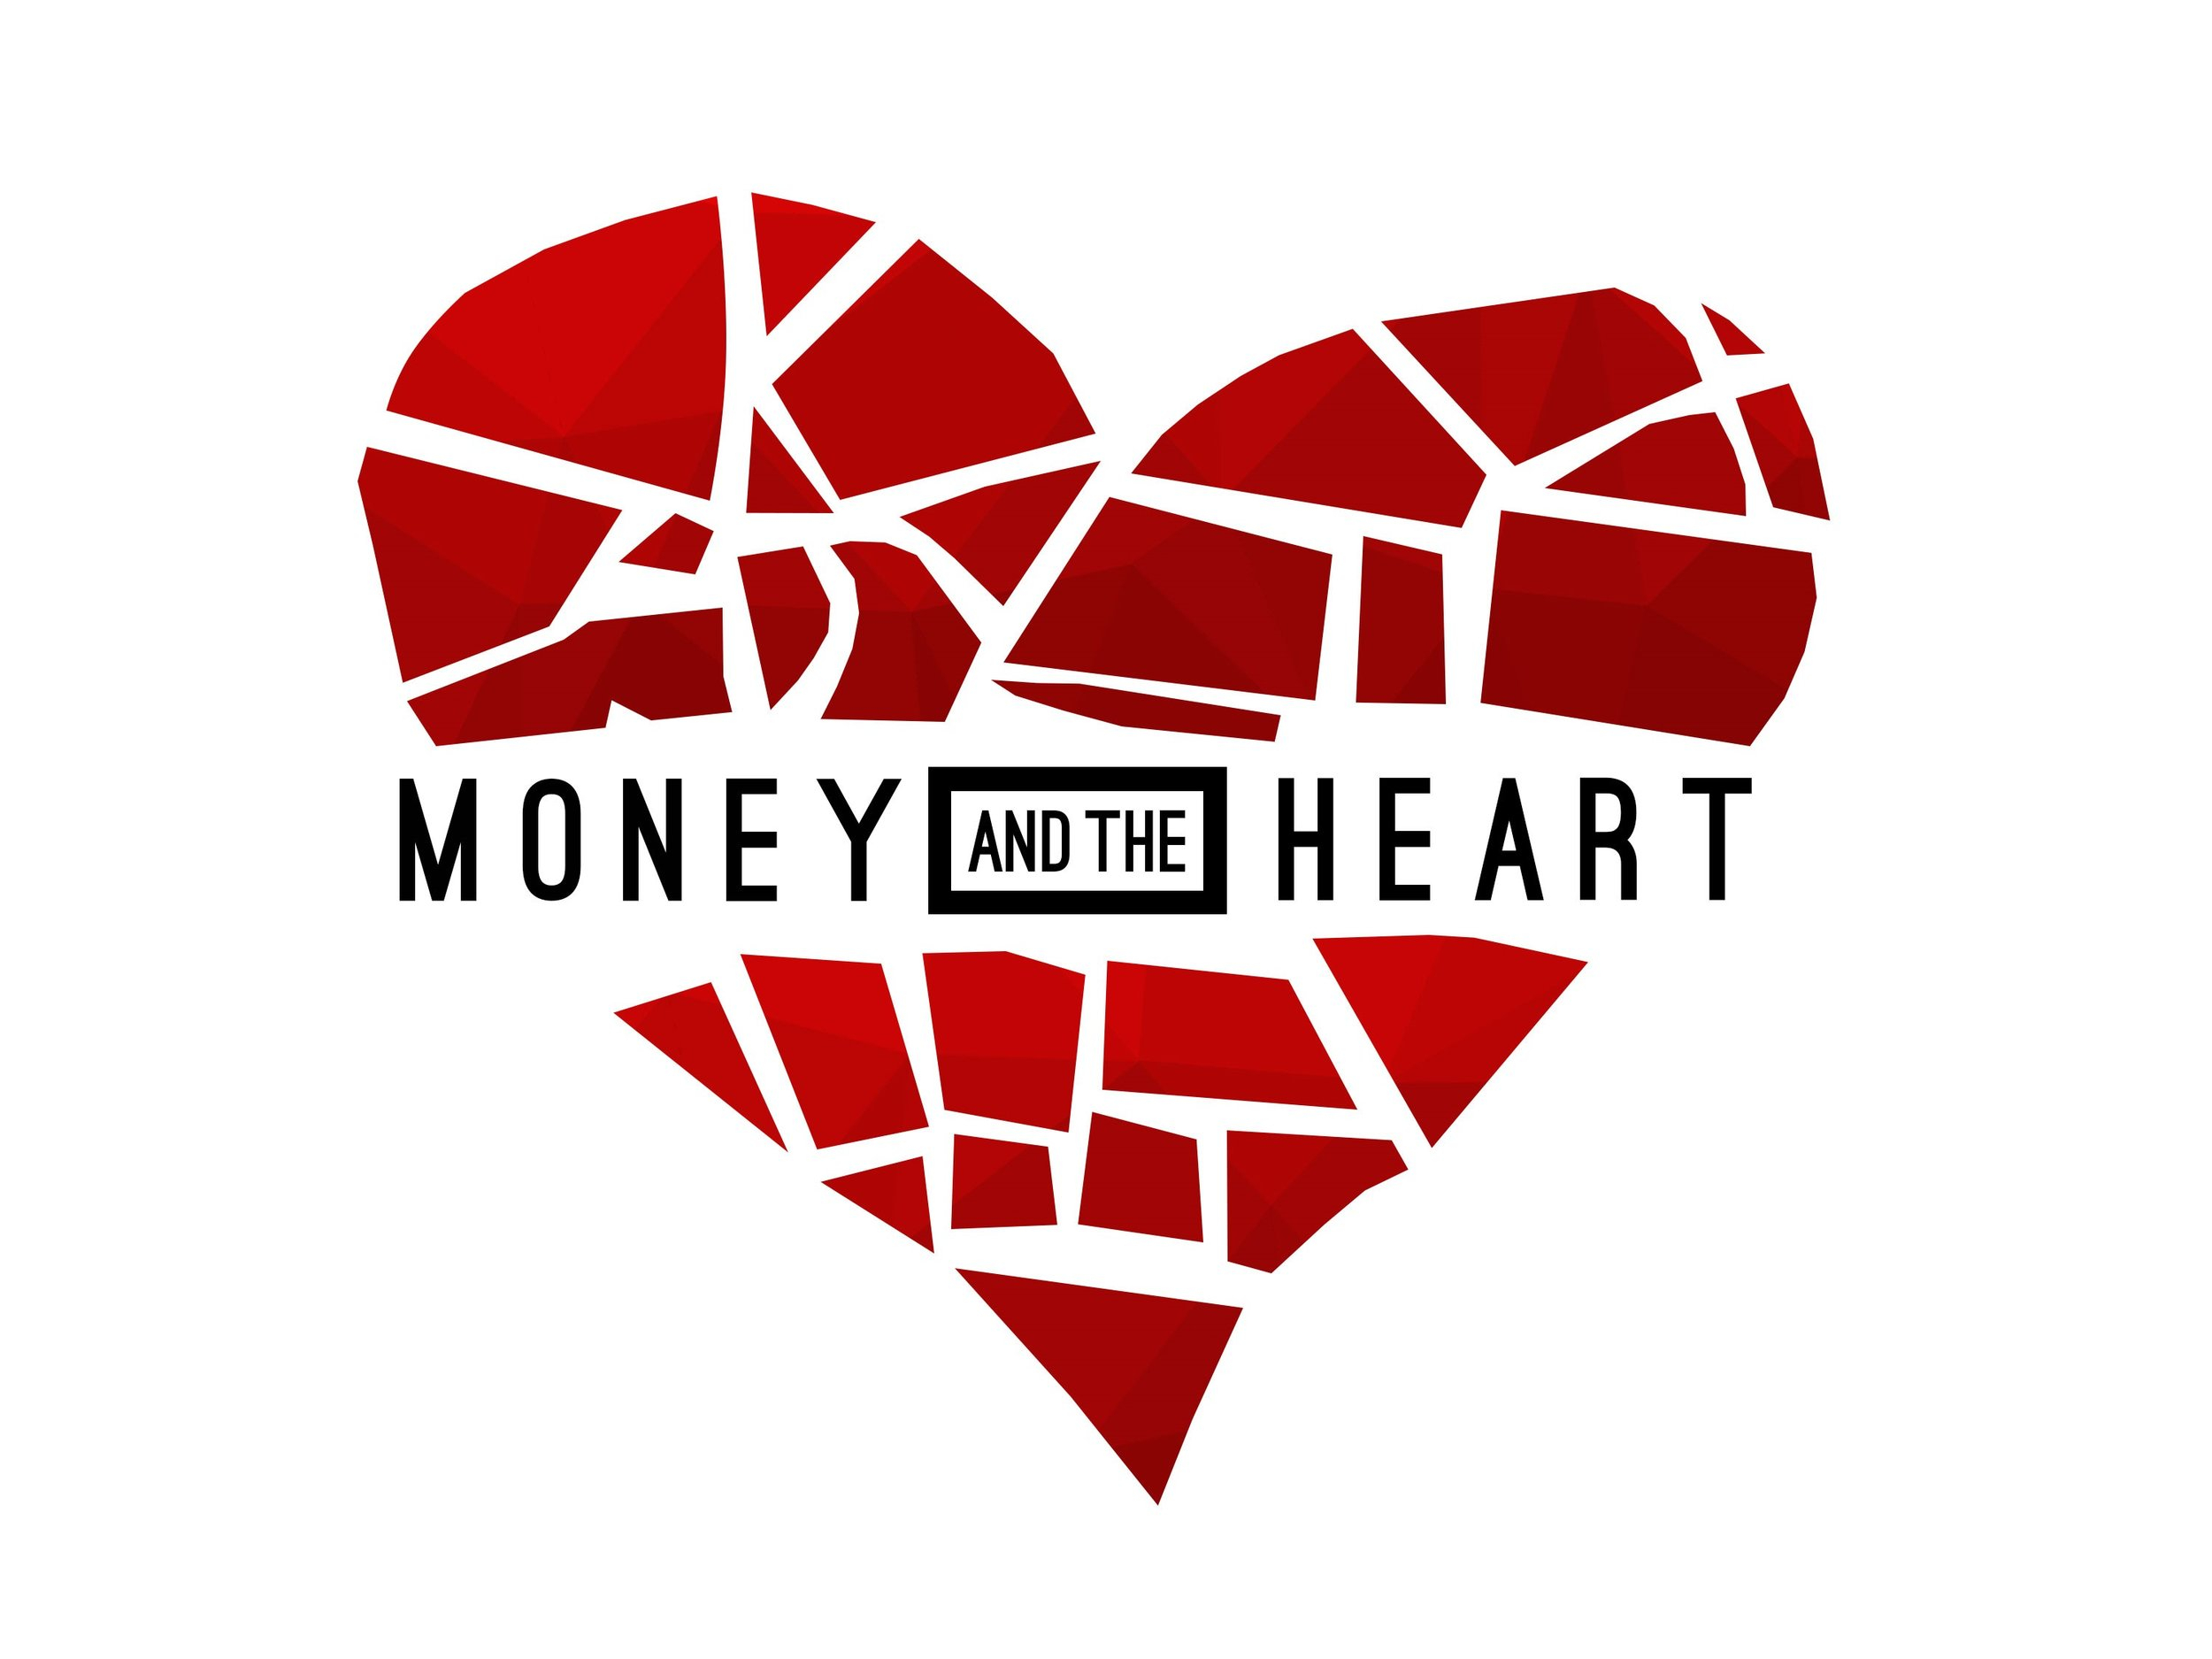 Money and the Heart Graphic.jpg